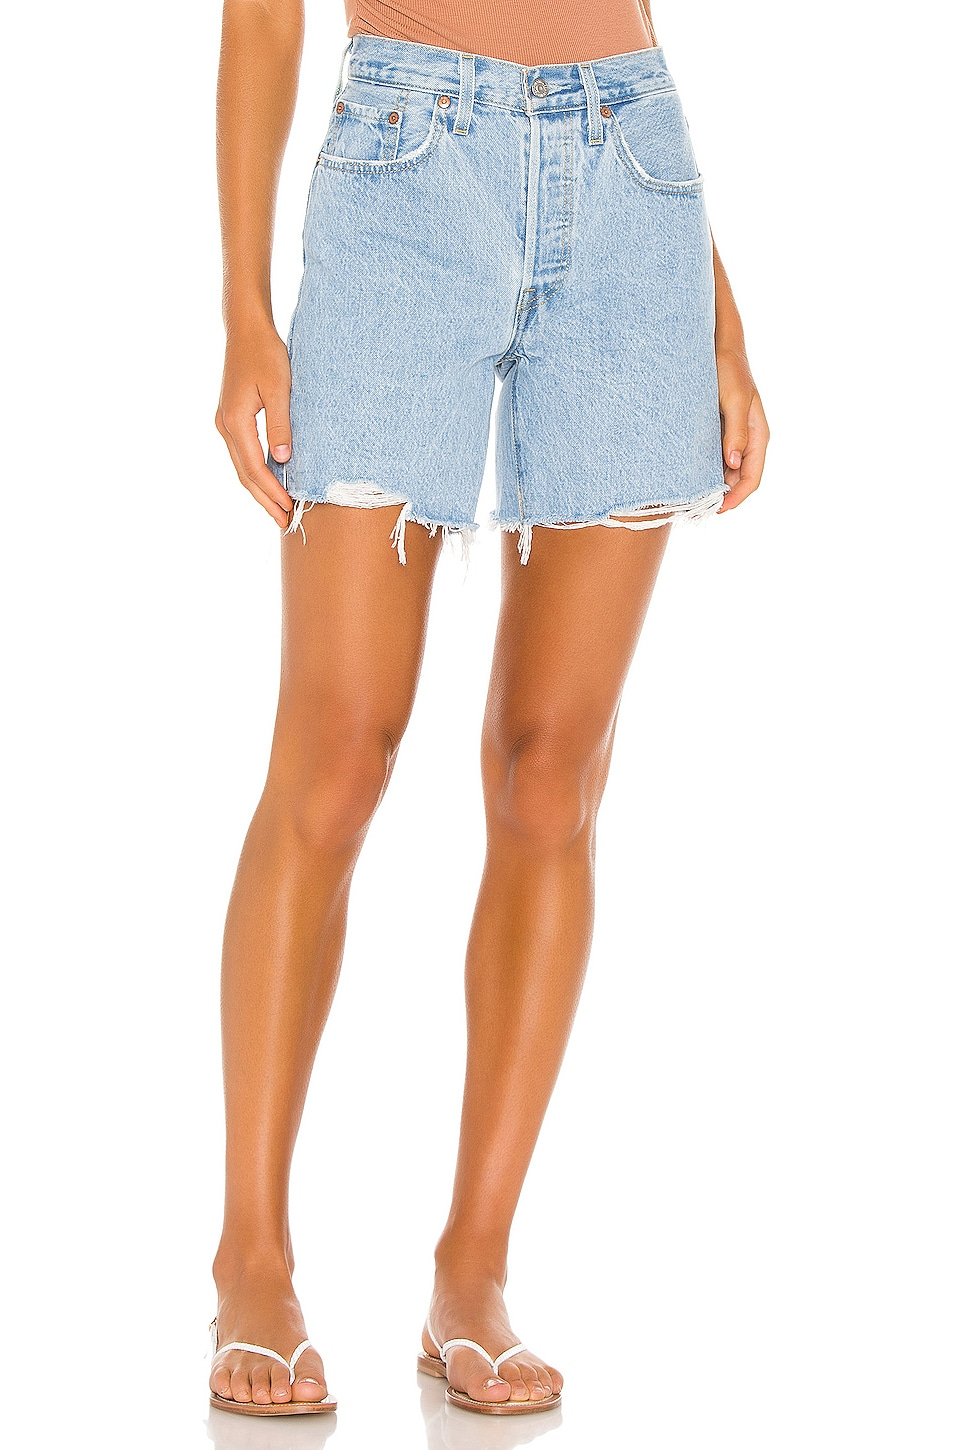 501 Mid Thigh Short             LEVI'S                                                                                                       CA$ 94.58 4